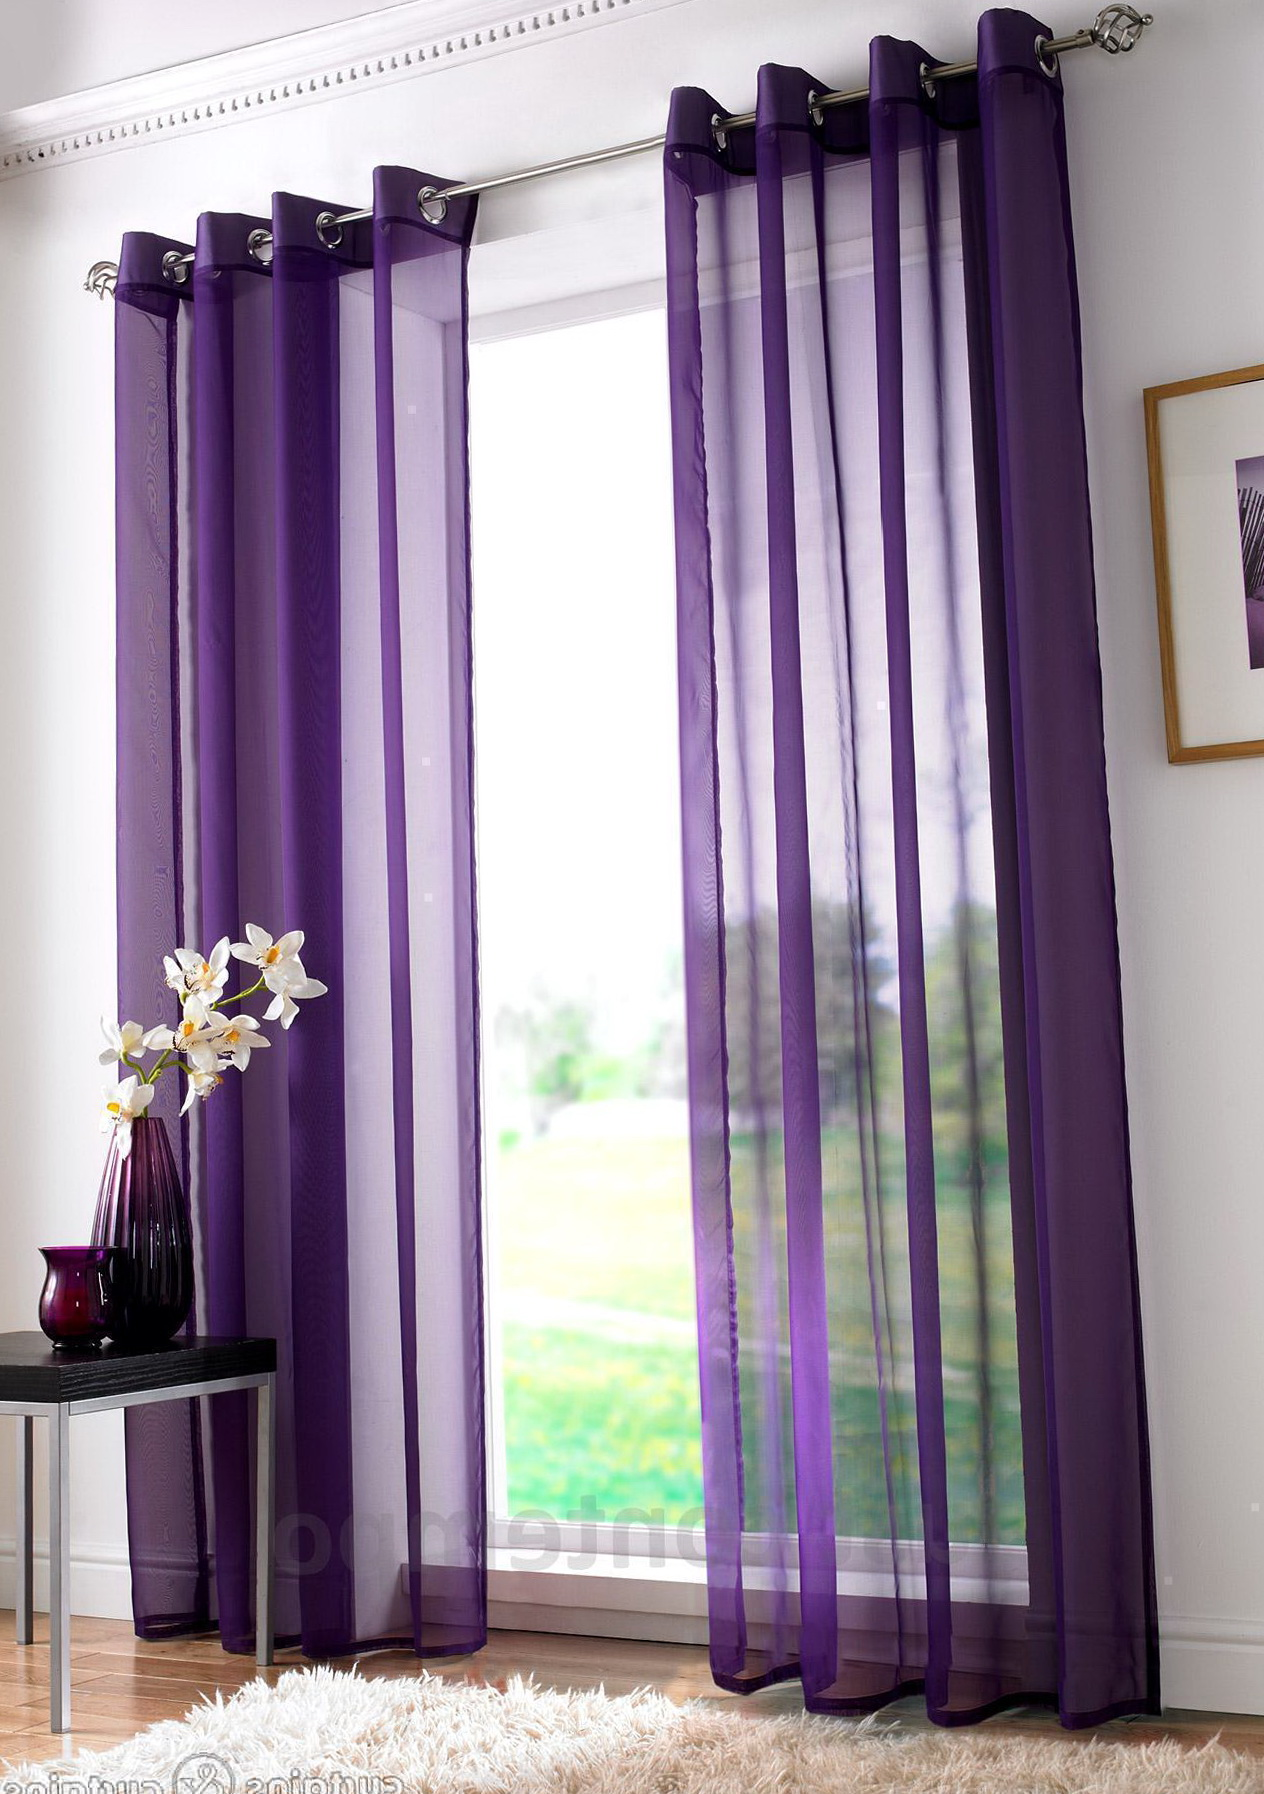 New Purple Sheer Curtain Panels - Curtain Designs YN54